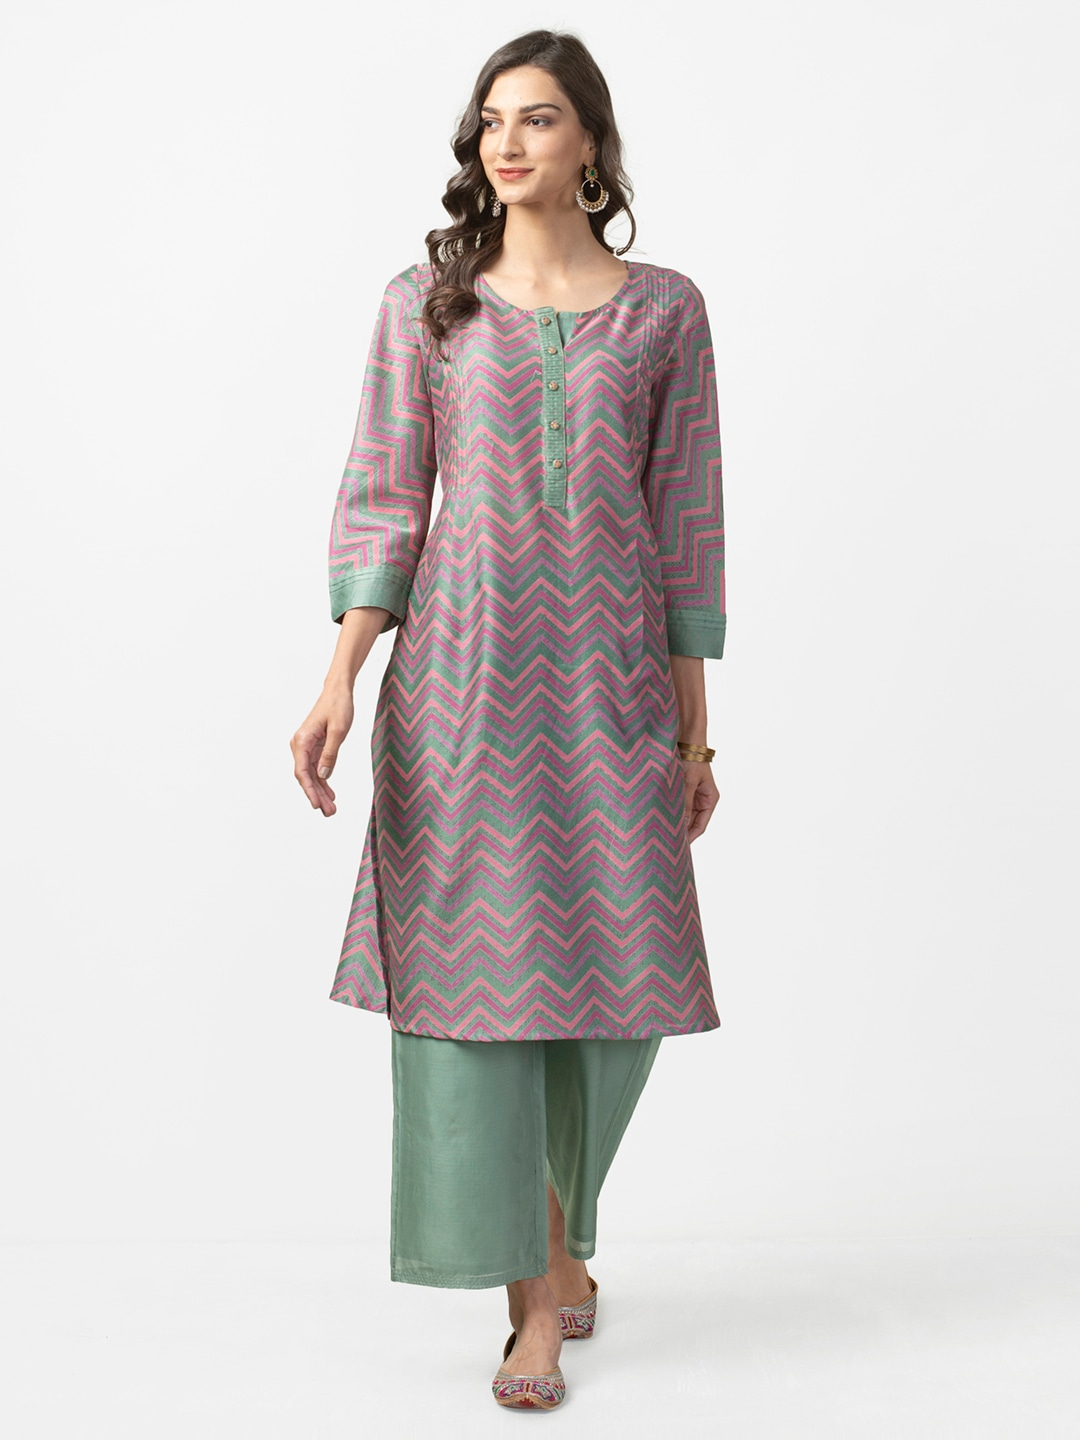 2bfed68e3 Women s Fabindia Kurtas - Buy Fabindia Kurtas for Women Online in India